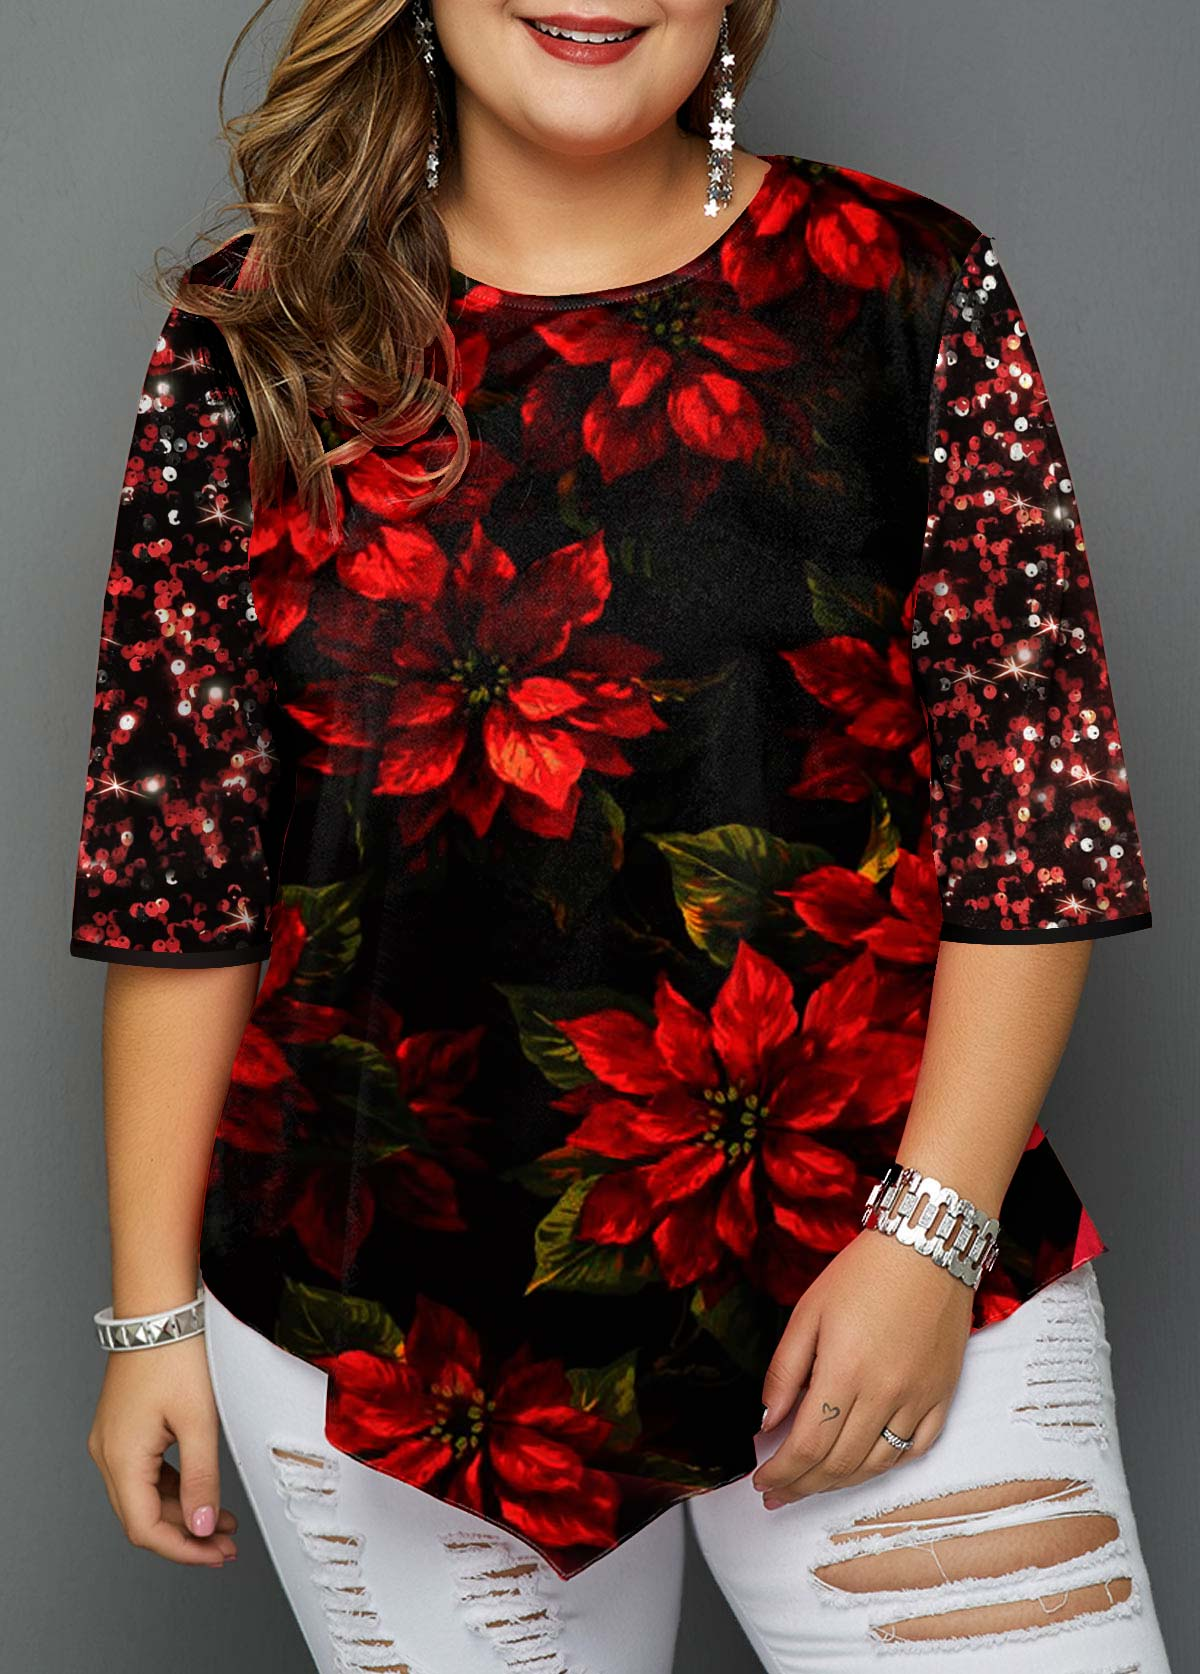 Christmas Print Sequin Embellished Plus Size T Shirt